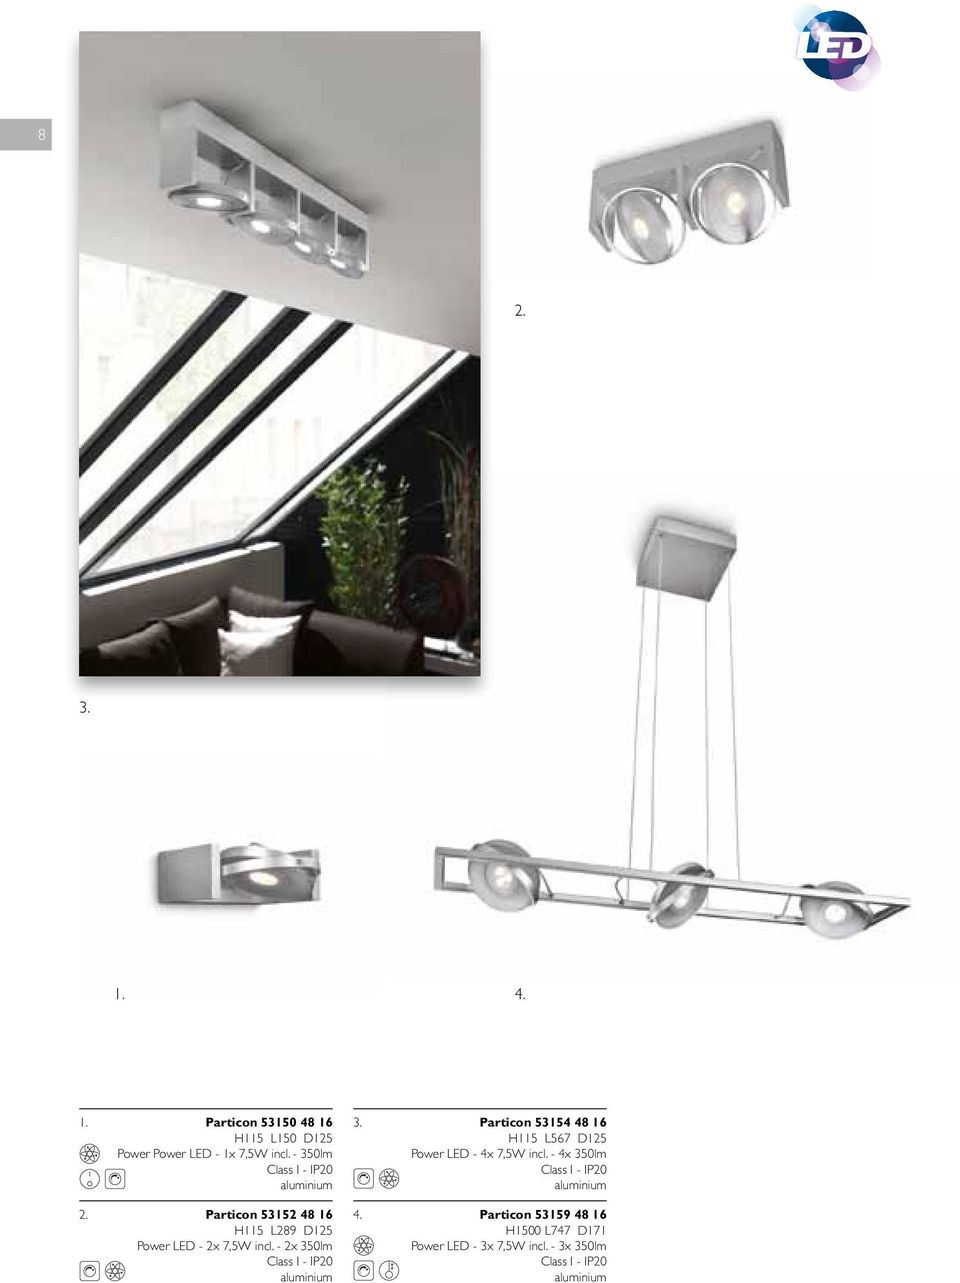 L289 D125 Power LED - 2x 7,5W incl. - 2x 350lm 3.